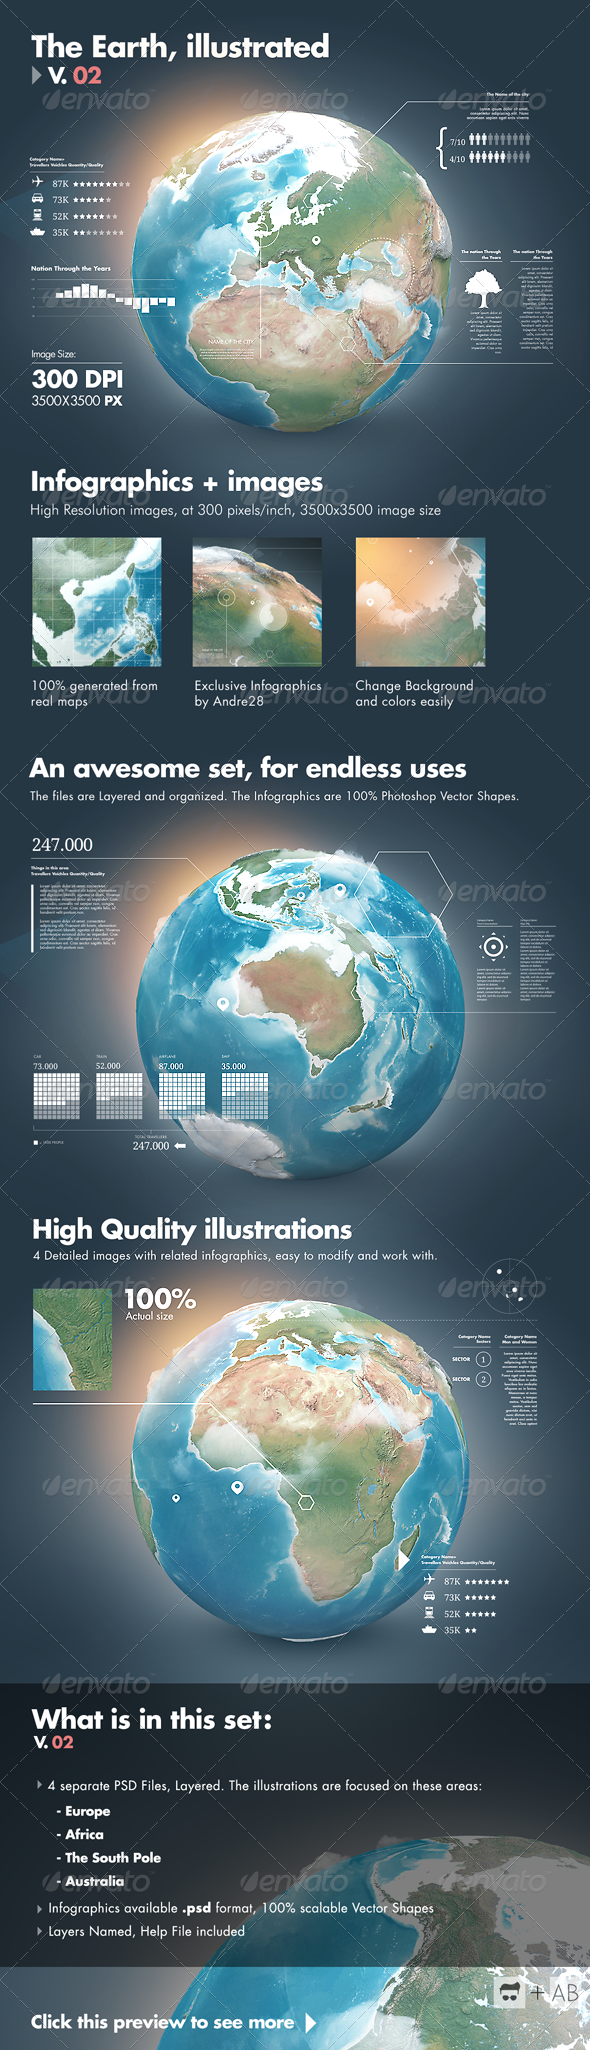 Earth Illustrated, 3D World and Infographics - V2  - Infographics